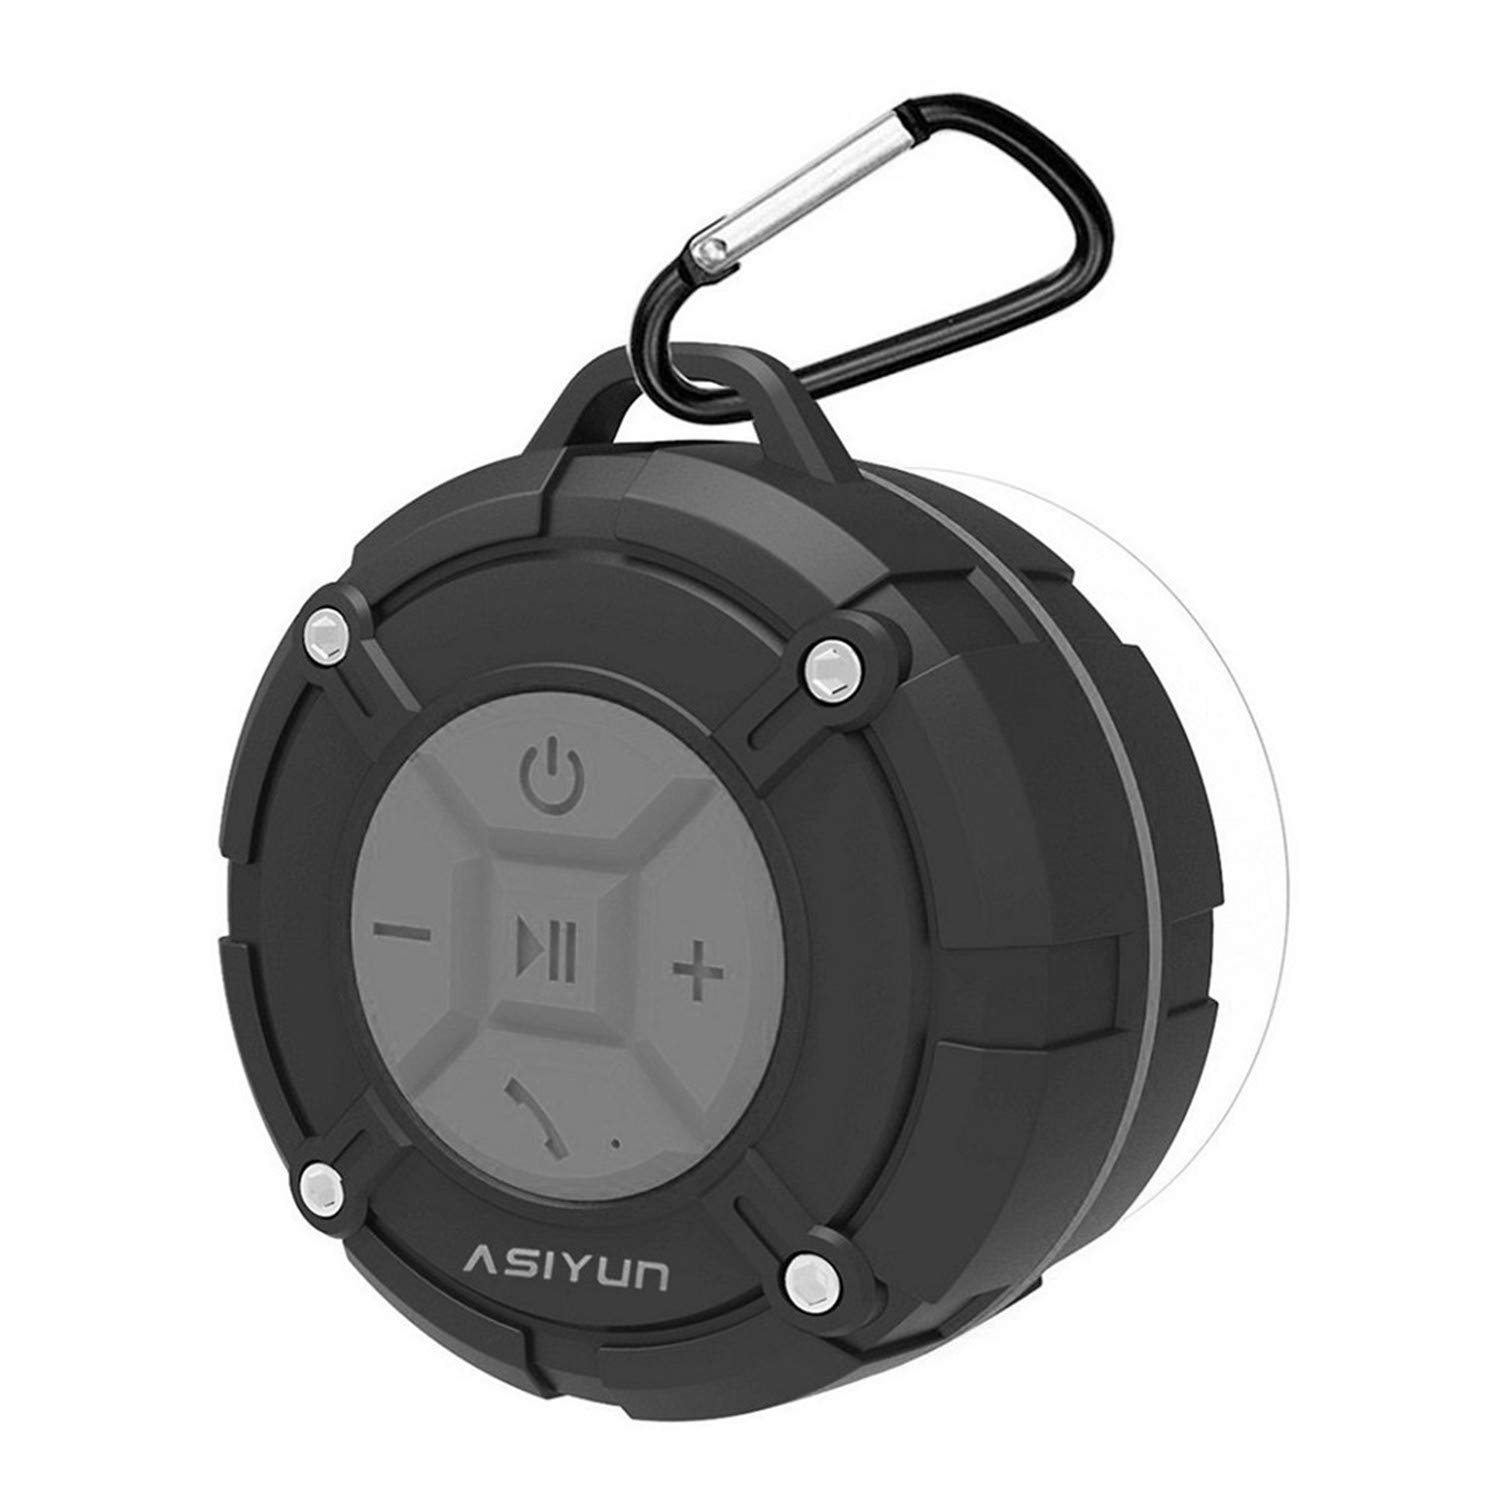 ASIYUN Portable Waterproof Wireless Shower Speakers with...